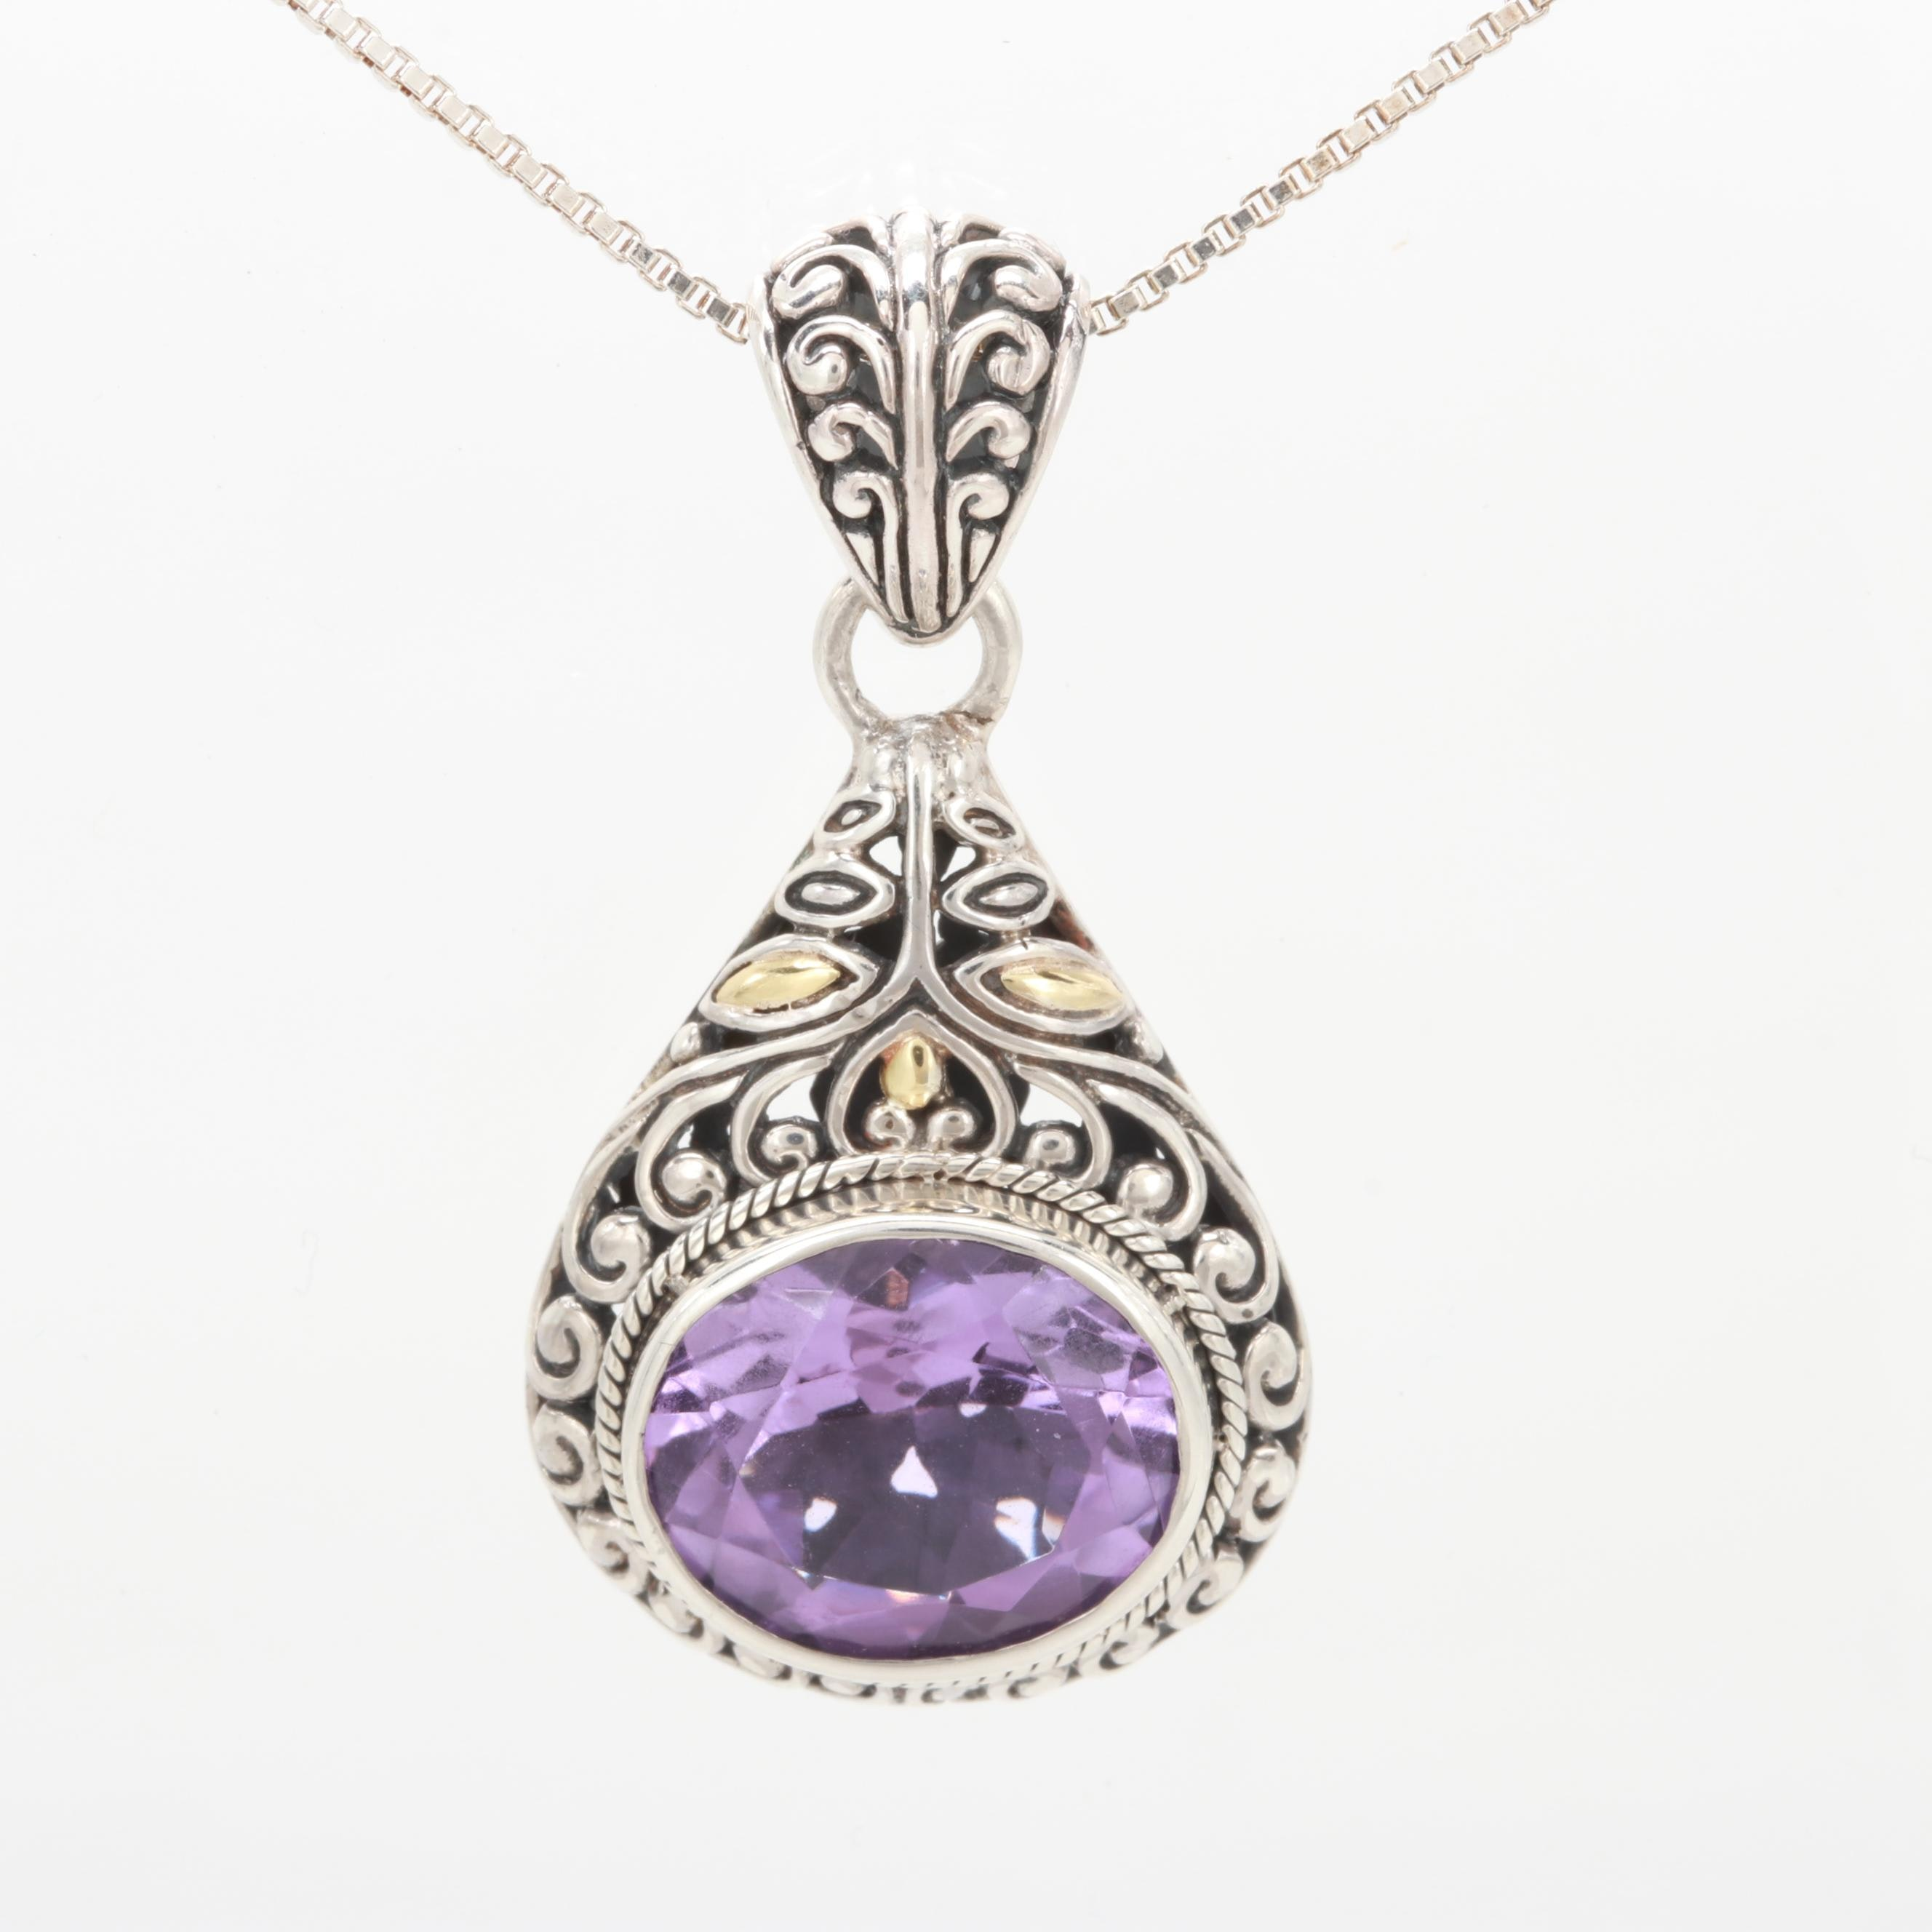 Robert Manse Sterling Silver Amethyst Necklace with 18K Accents